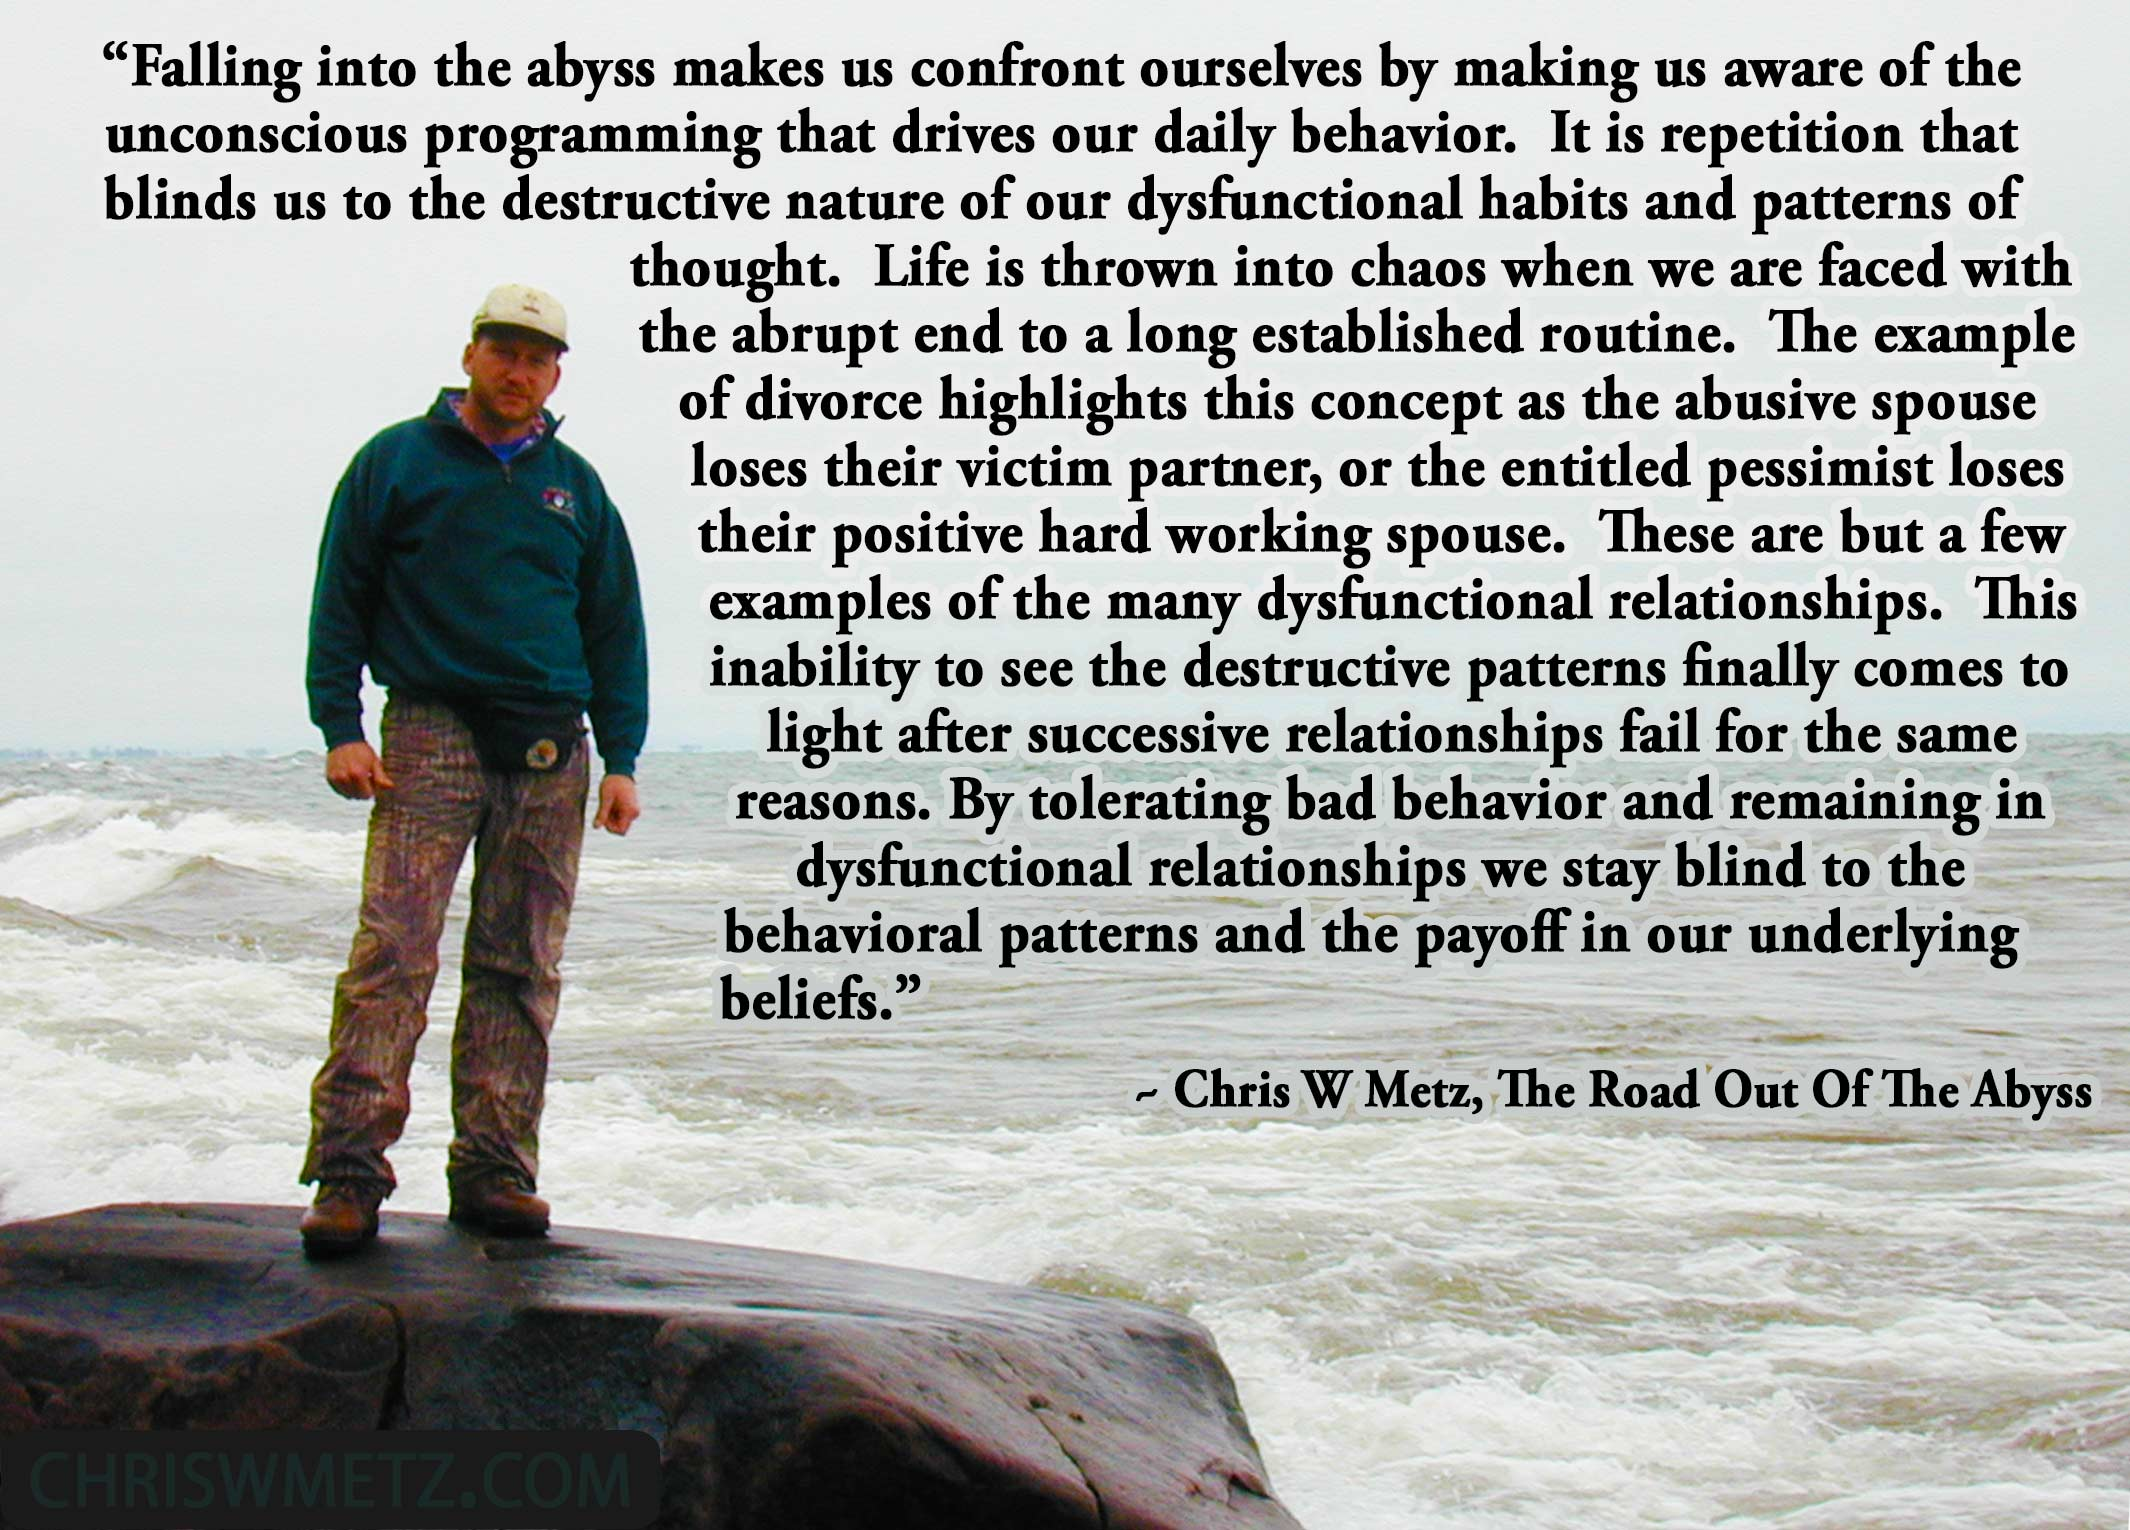 self awareness quote 17 chris w metz the road out of the abyss